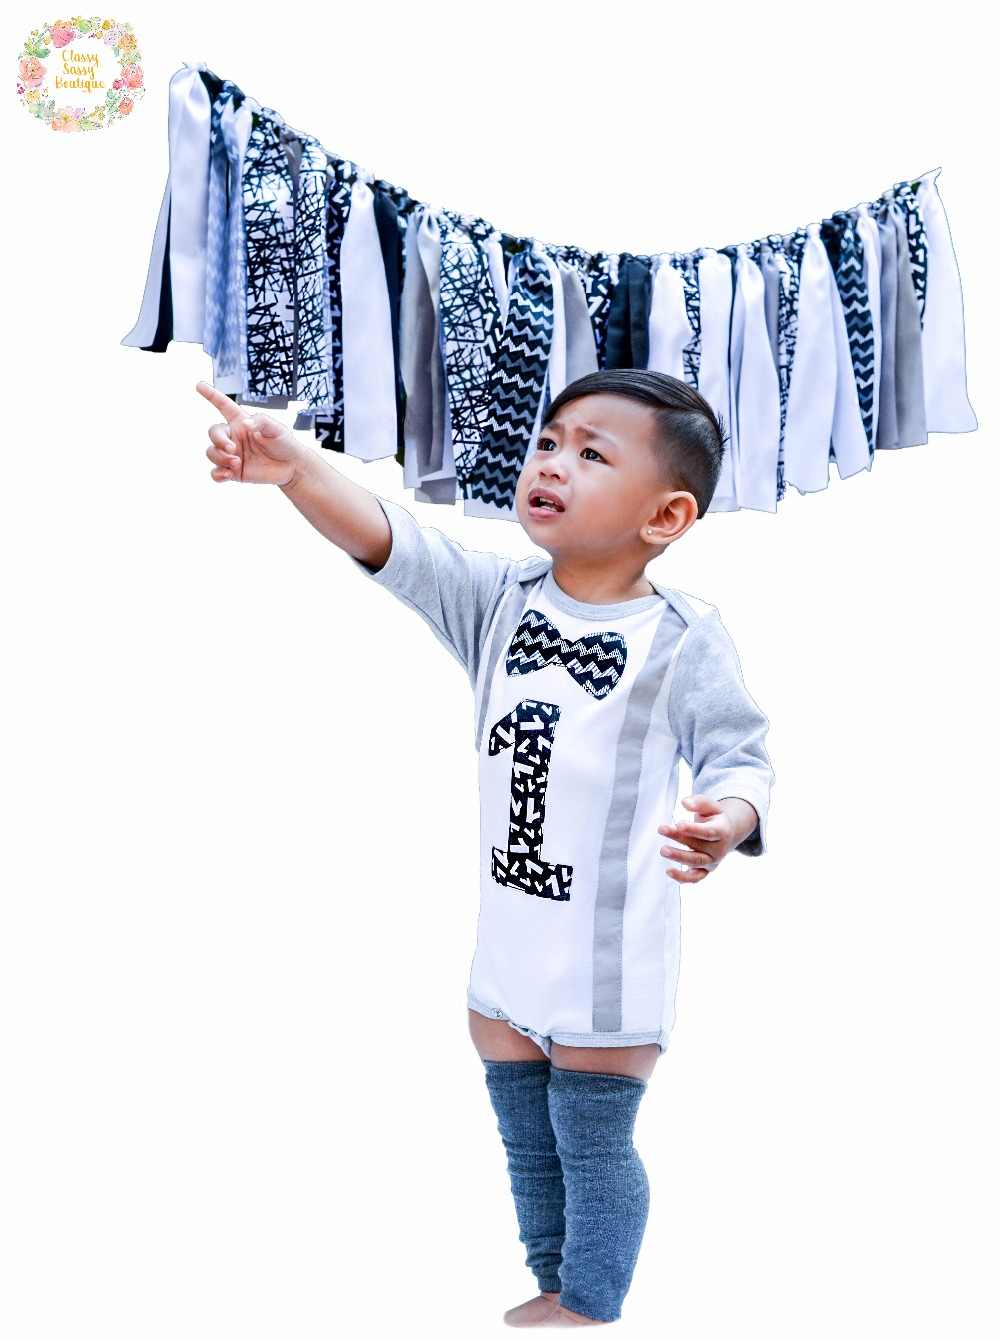 17879d63a Detail Feedback Questions about First B Day Cake Smash Romper 1st Birthday  Baby Boy Onesie Outfit with Leg Warmers and Banner Classy Black White Party  on ...